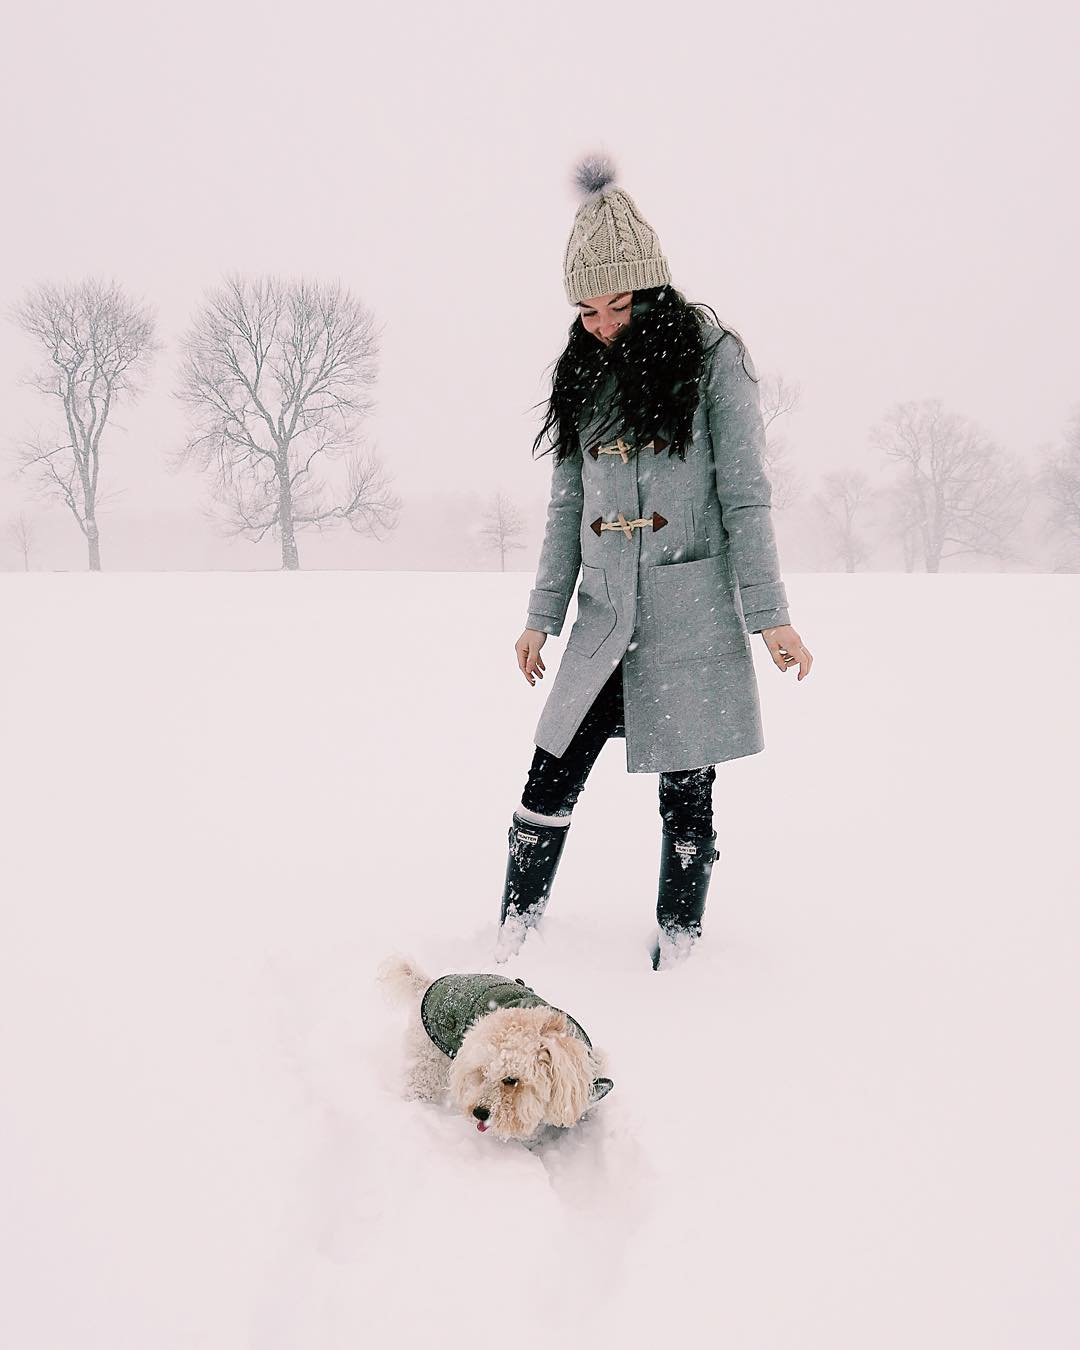 Carly recently took some time out from running The College Prepster blog so she could enjoy some serious snow time with Teddy following the recent blizzard in NYC.